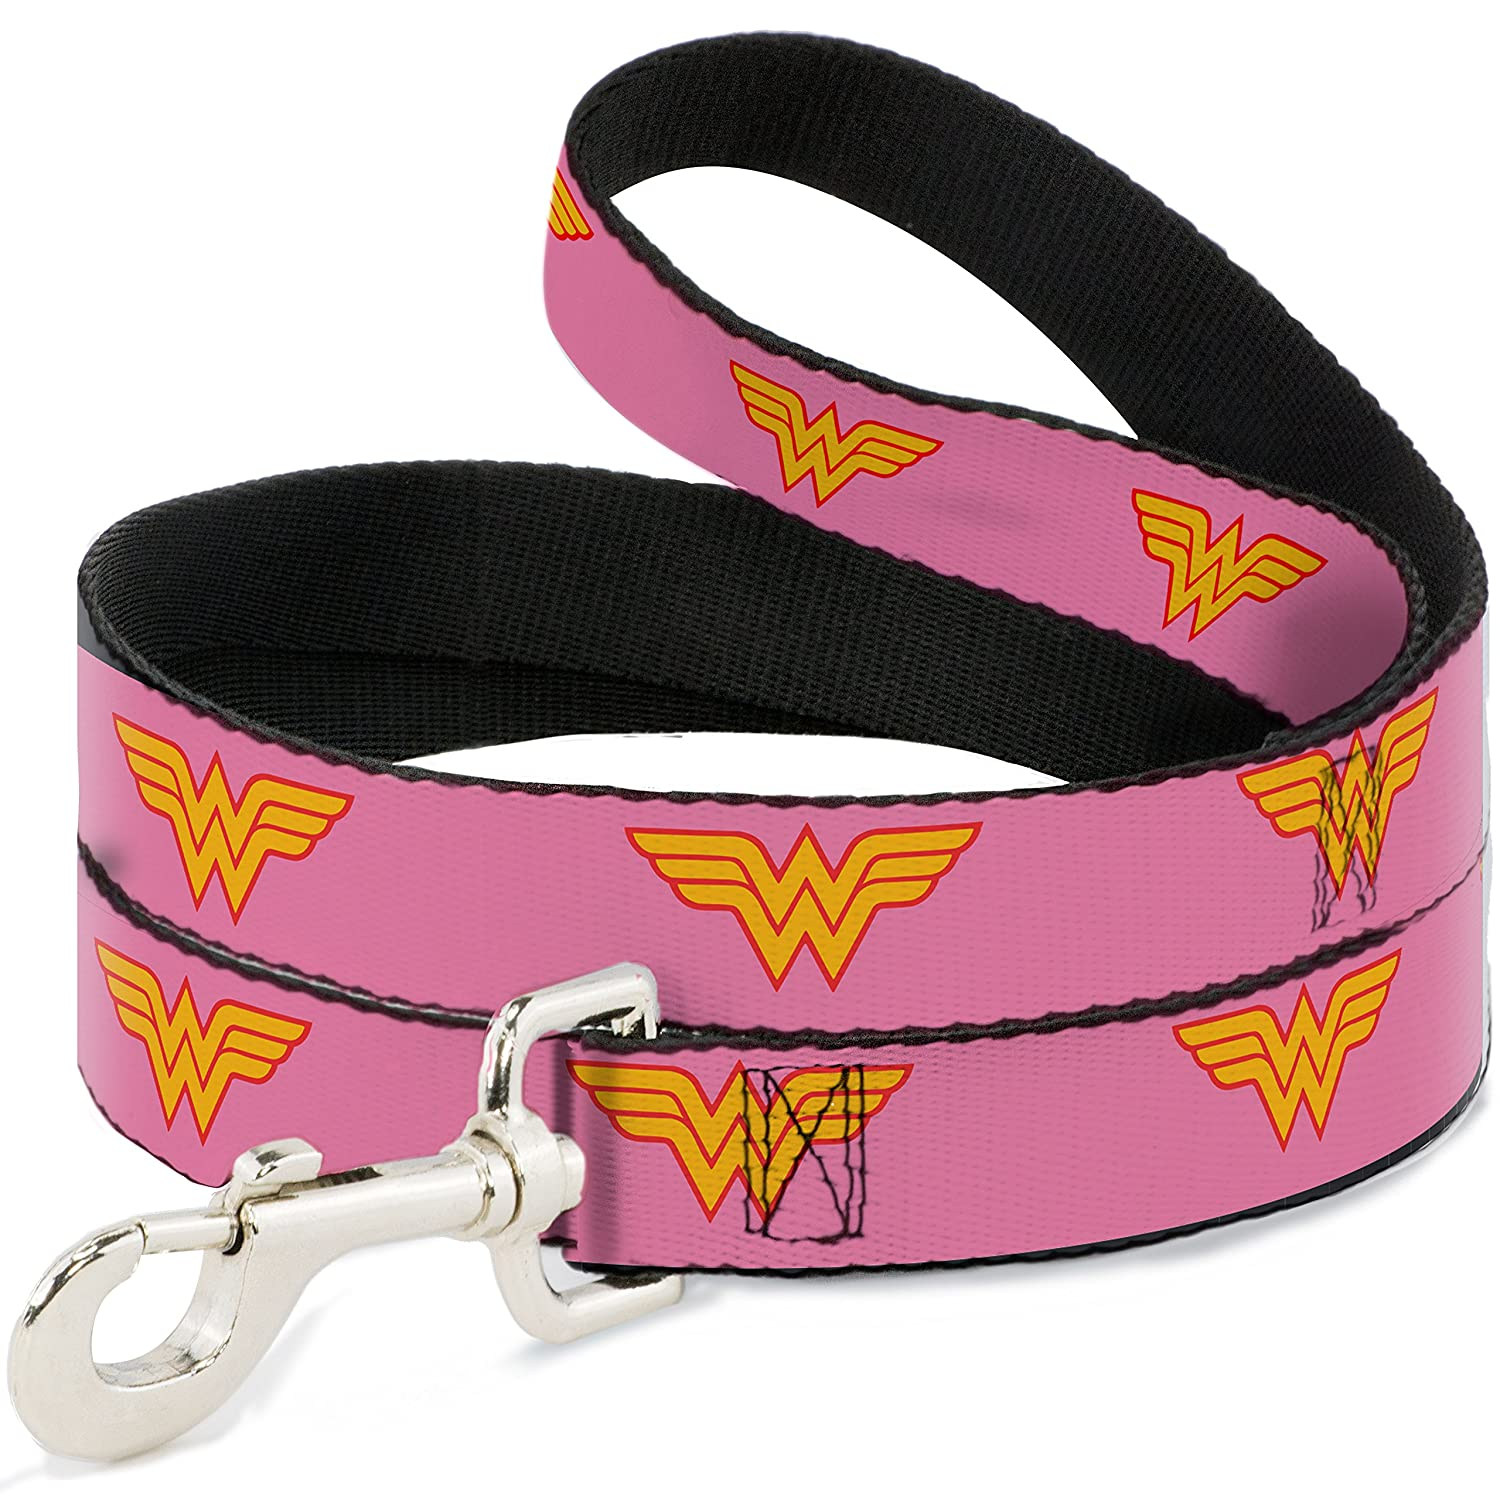 6' Buckle-Down DL-6FT-WWW002 Dog Leash, Wonder Woman Logo Pink, 6'